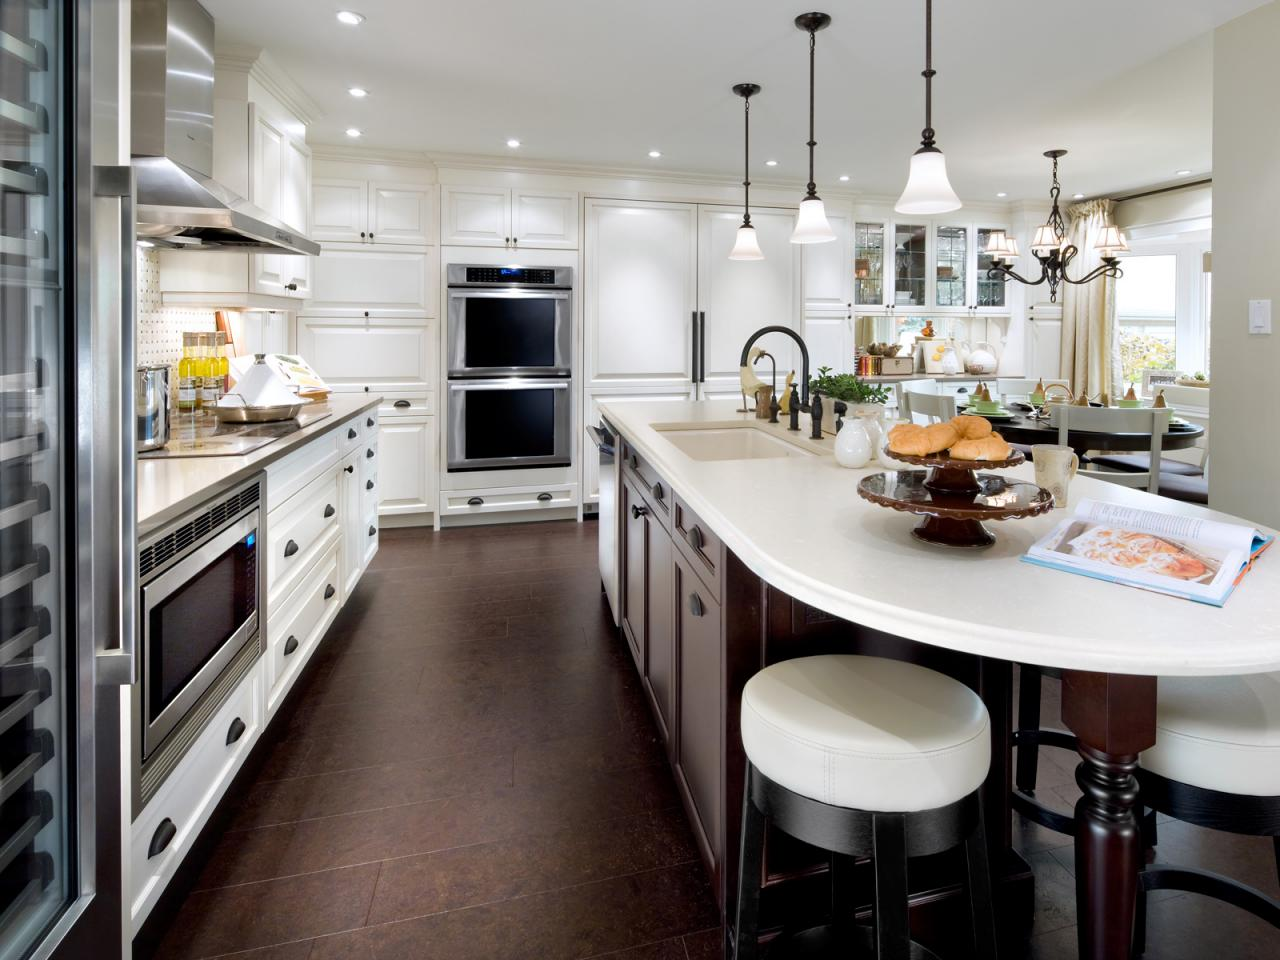 candice olson kitchens pictures photo - 1